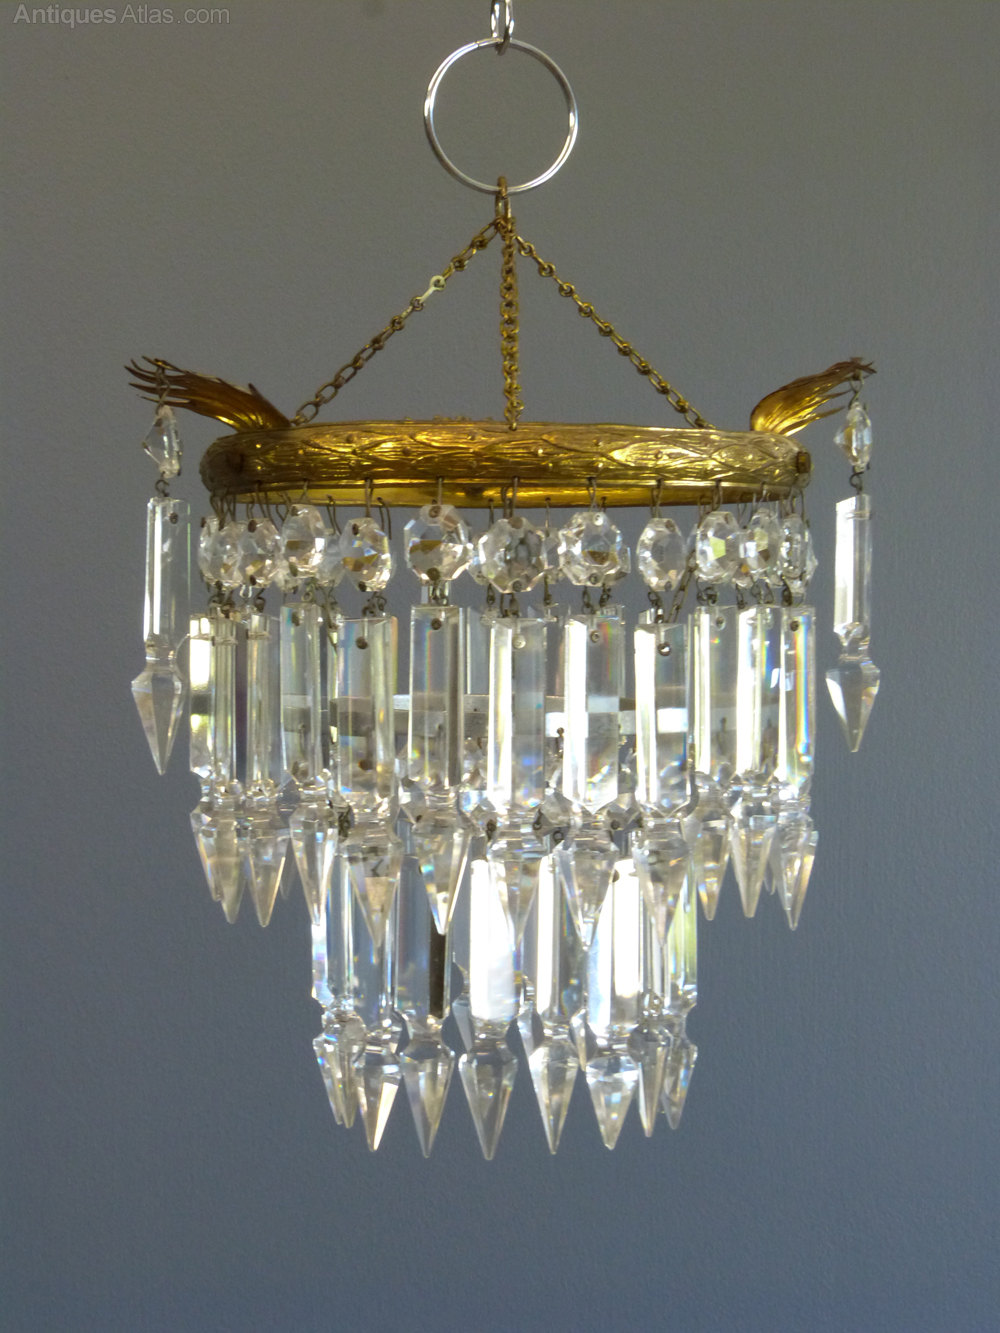 Antiques atlas 1930s small albert drop chandelier 1930s small albert drop chandelier mozeypictures